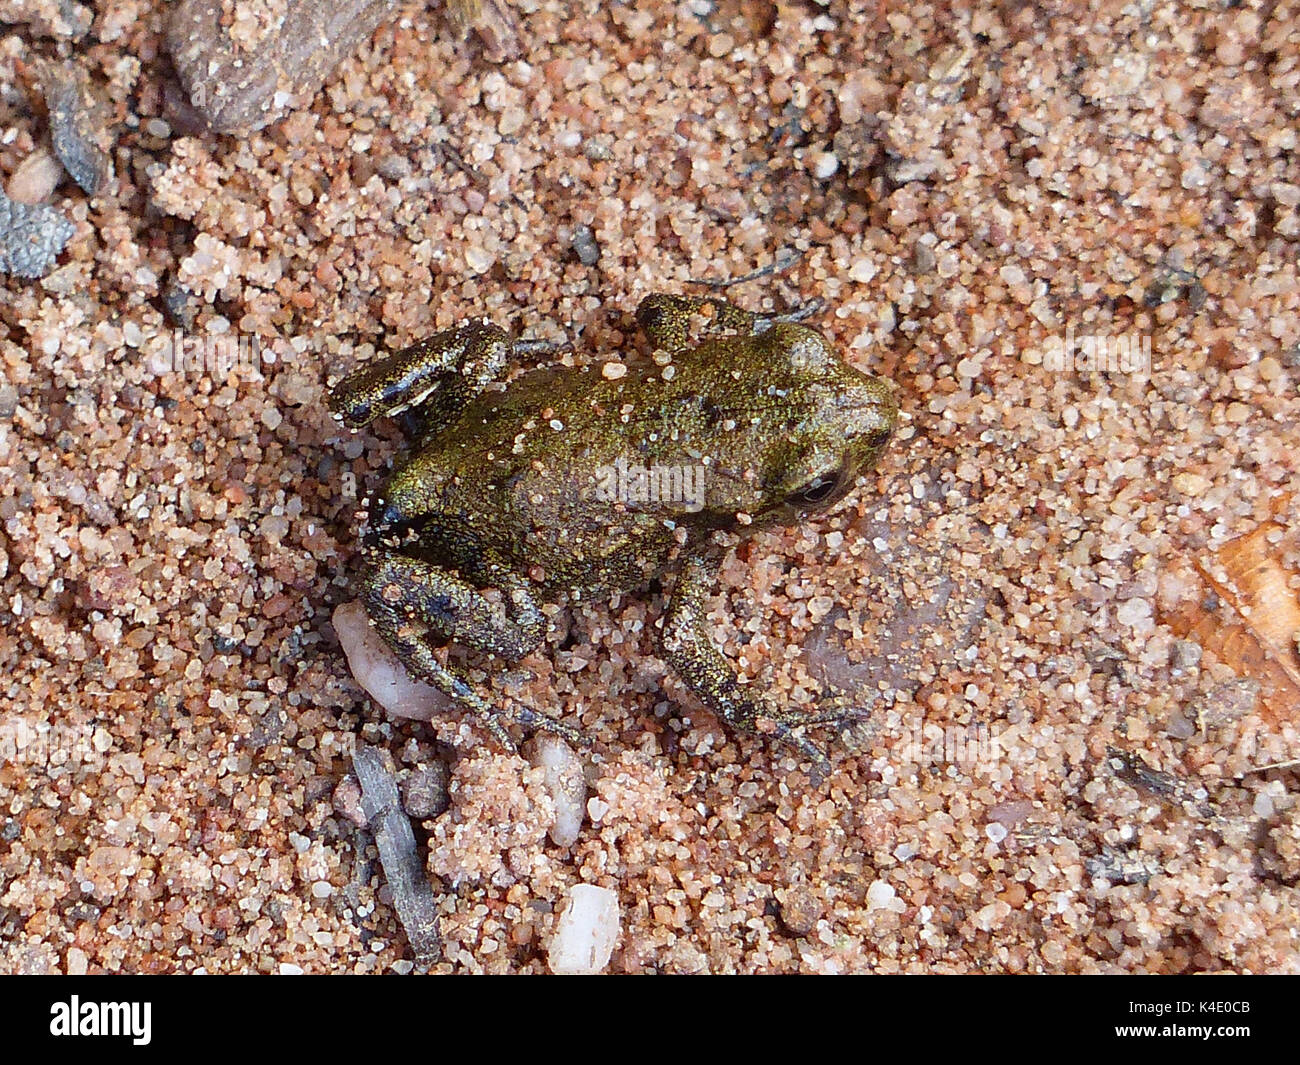 Little Respectively Young Frog With A Size Of About Two Cm - Stock Image